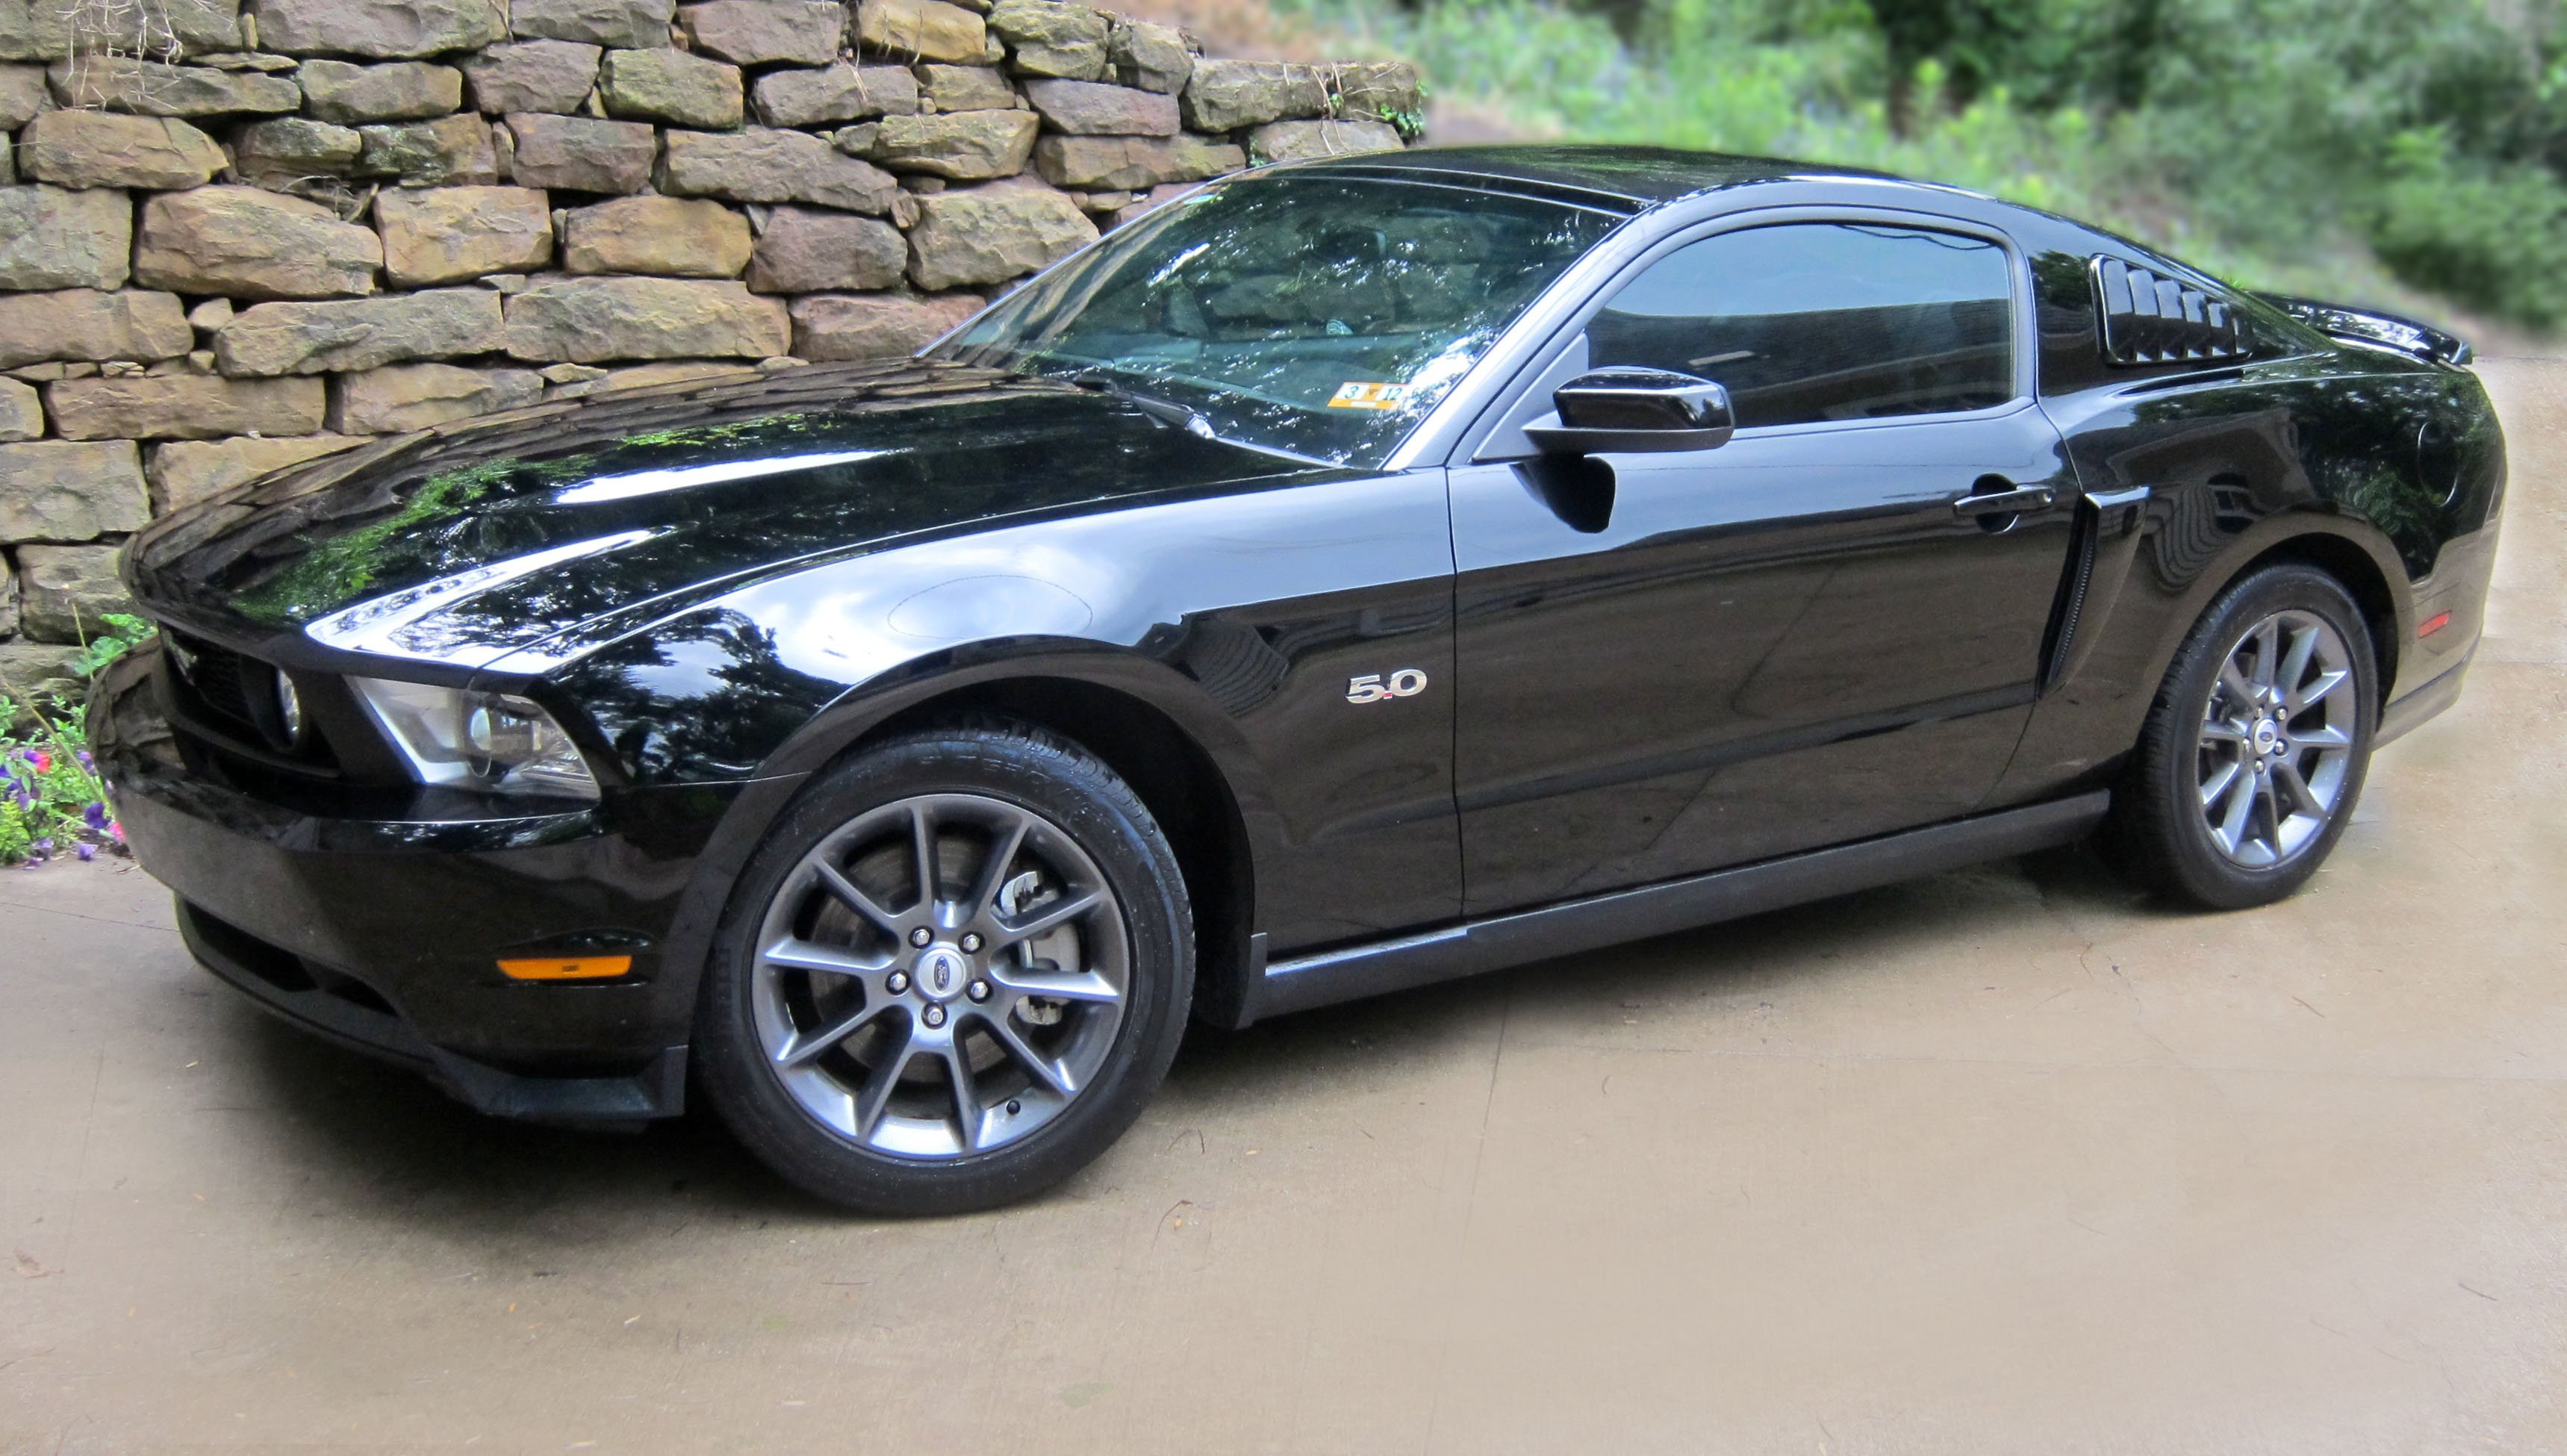 2011 2014 mustang v8 pic thread page 76